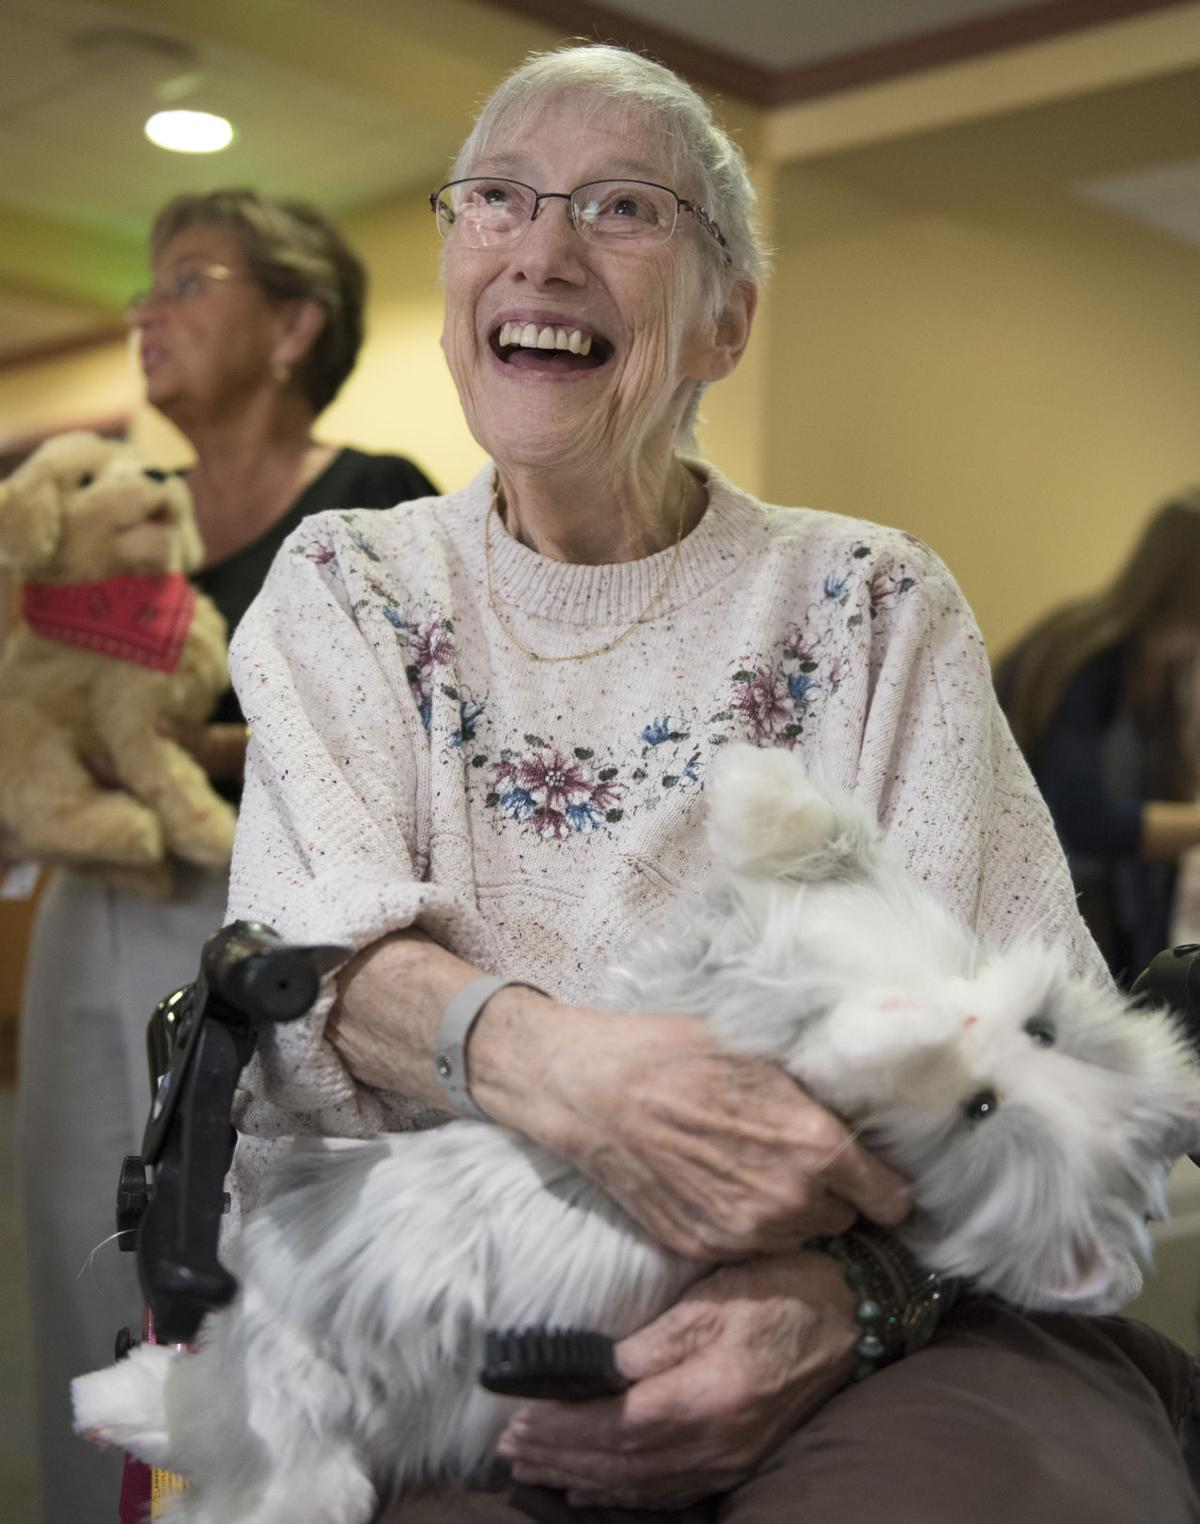 Homewood patients with dementia get perfect match with robotic pets